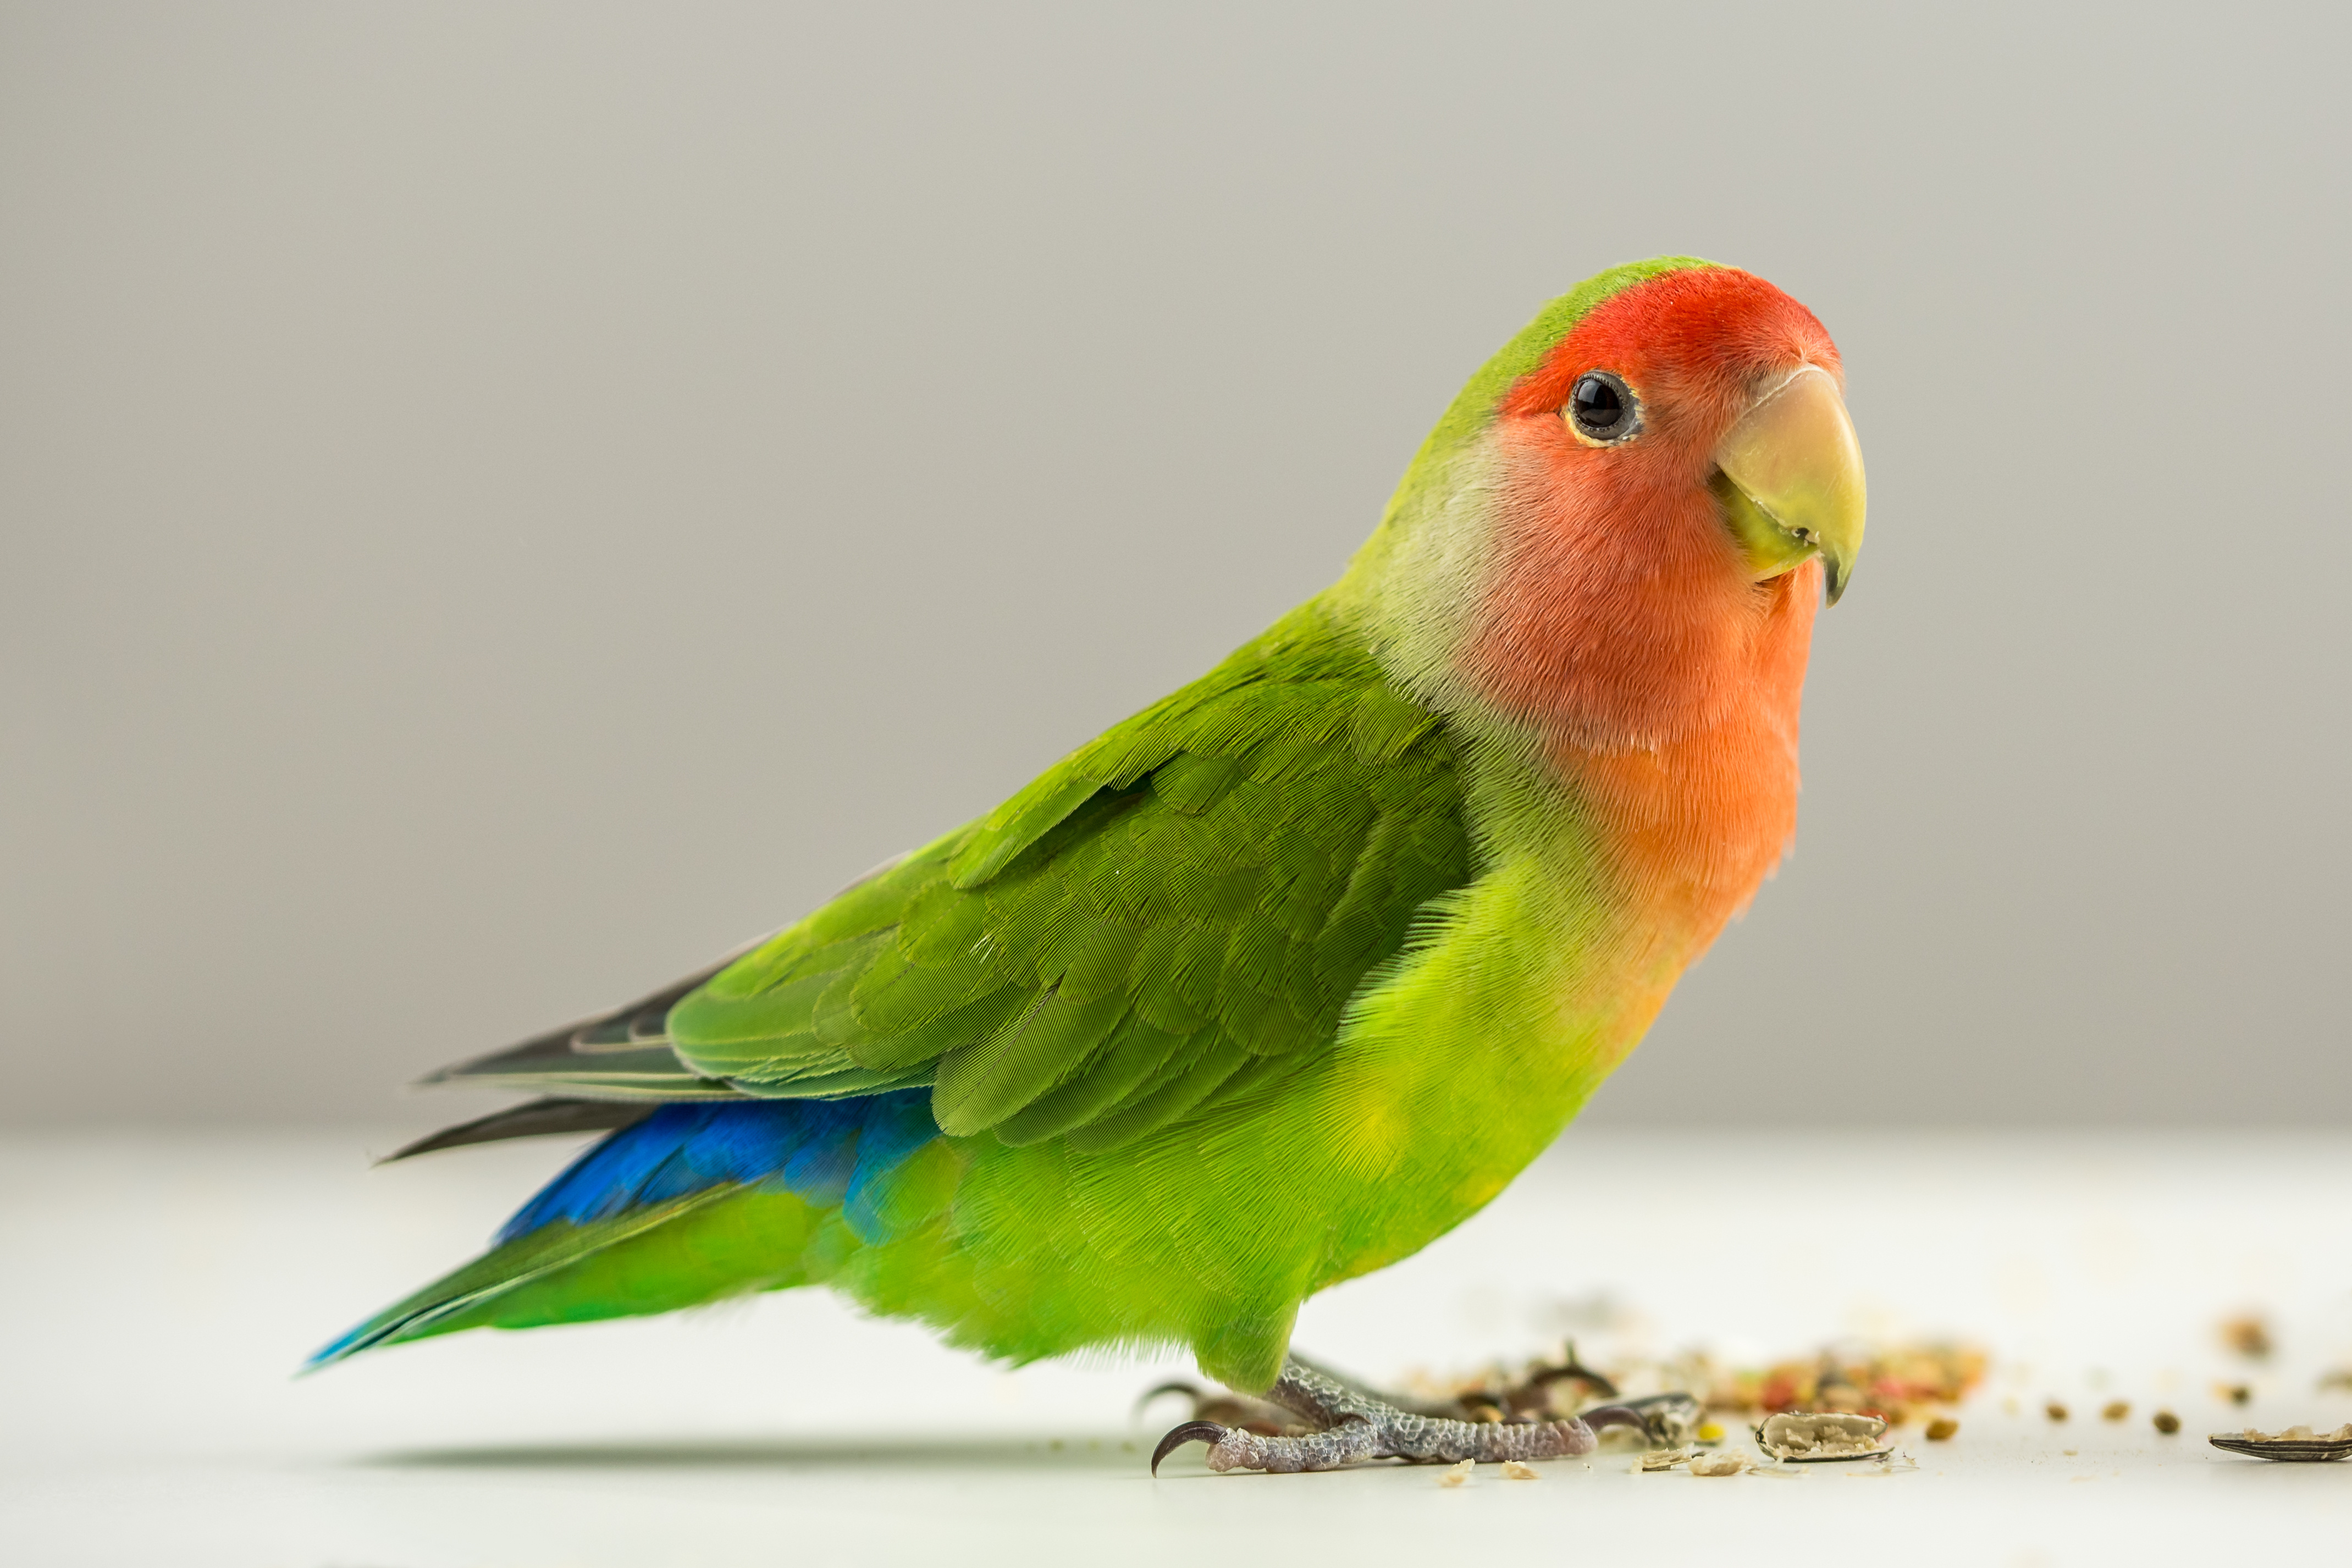 3 lovebird hd wallpapers | background images - wallpaper abyss